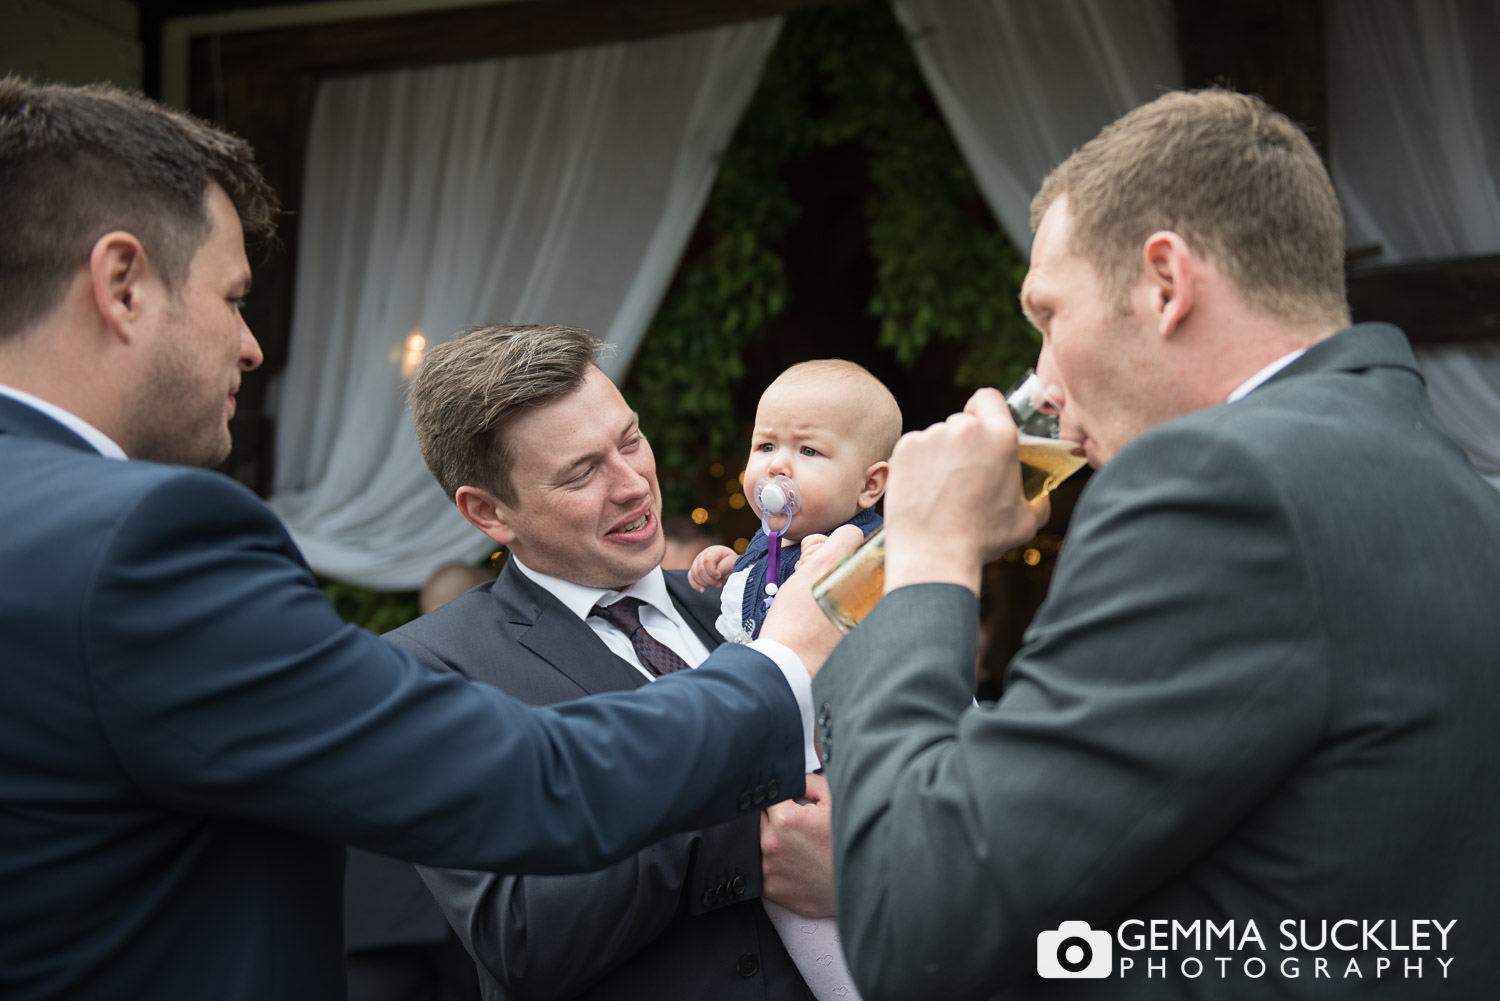 weddings-at-east-riddlesden-hall-63-©gemmasuckleyphotography.JPG